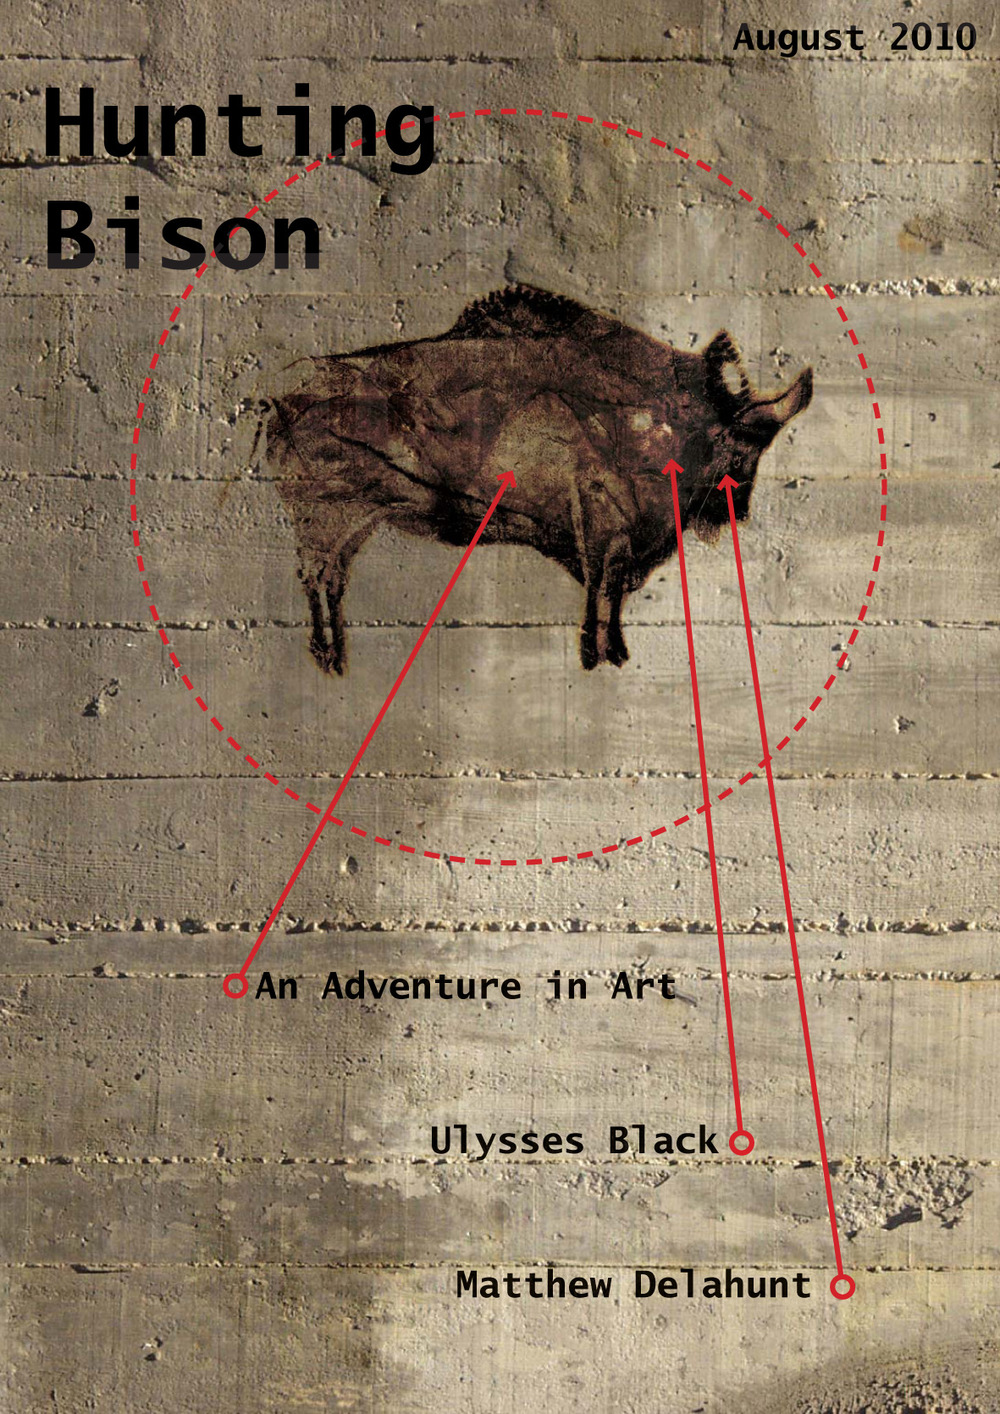 Cover designed for use in the pre Hunting Bison proposal material for viewing by prospective land owners.